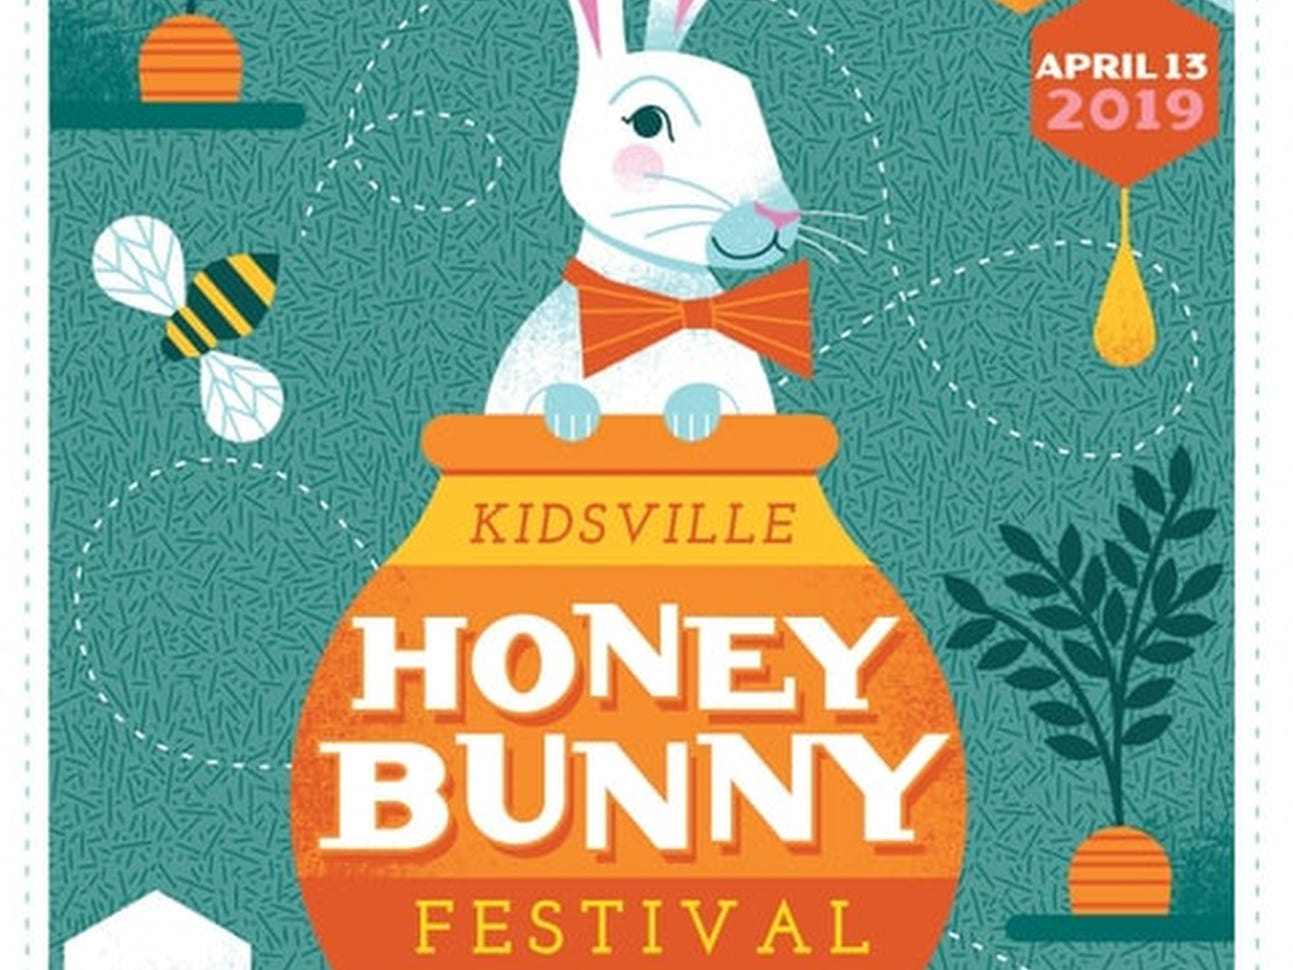 April 13 KIDSVILLE HONEY BUNNY FESTIVAL: 10 a.m.-3 p.m. Parthenon lawn in Centennial Park, free for children 12 and younger, kidsvilleonline.org